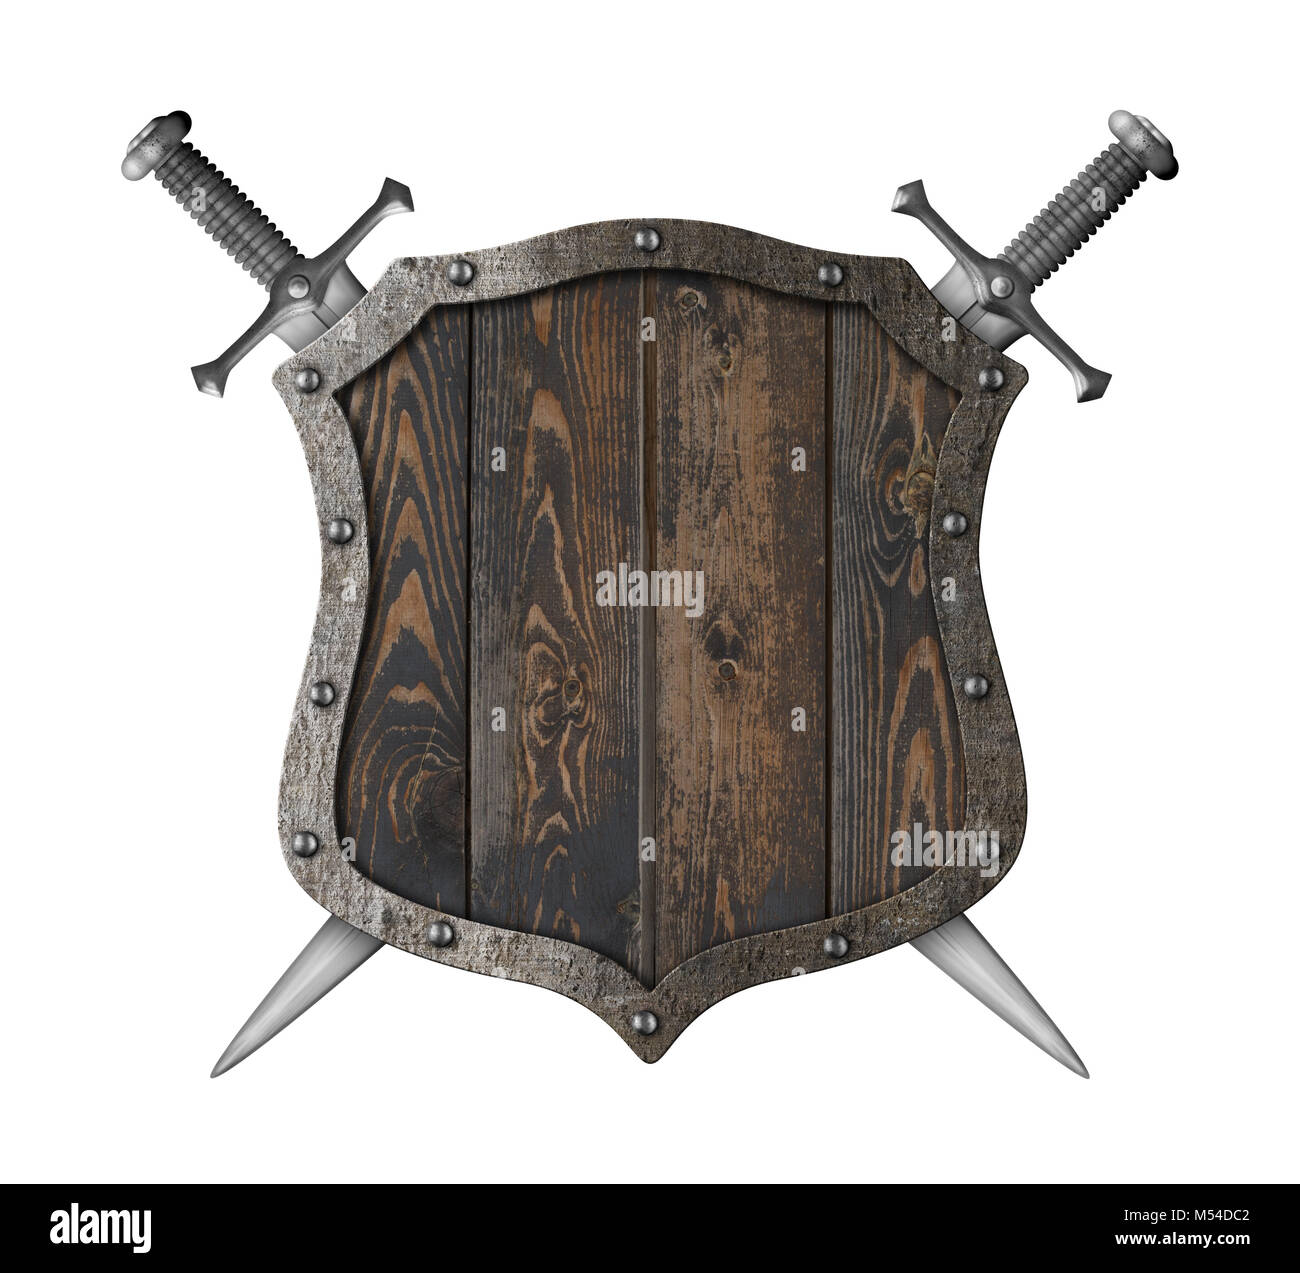 Wooden medieval heraldic shield with crossed swords 3d illustration - Stock Image